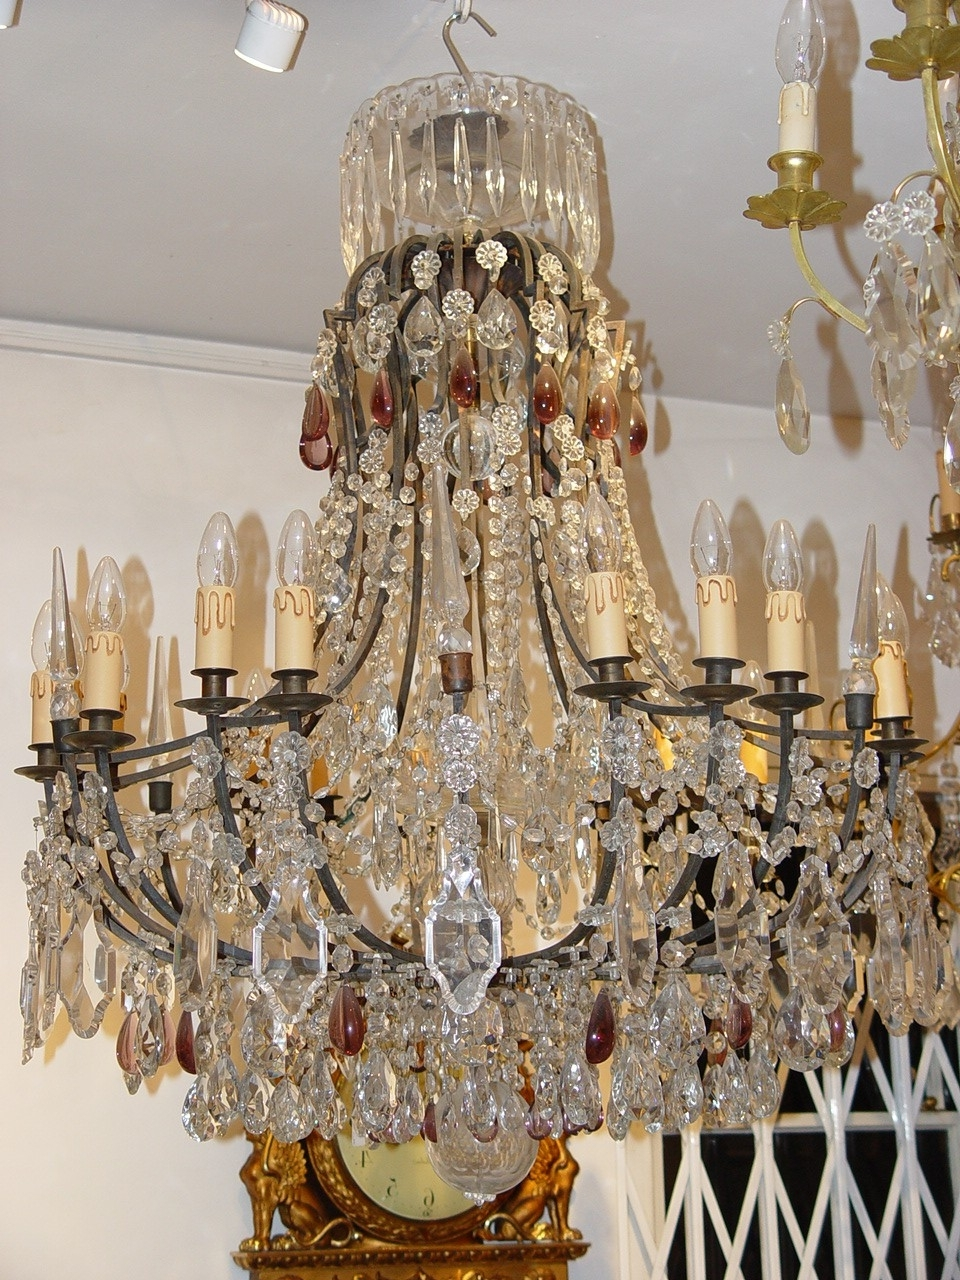 French Antique Chandelier – Chandelier Designs Intended For Well Known French Antique Chandeliers (View 9 of 20)